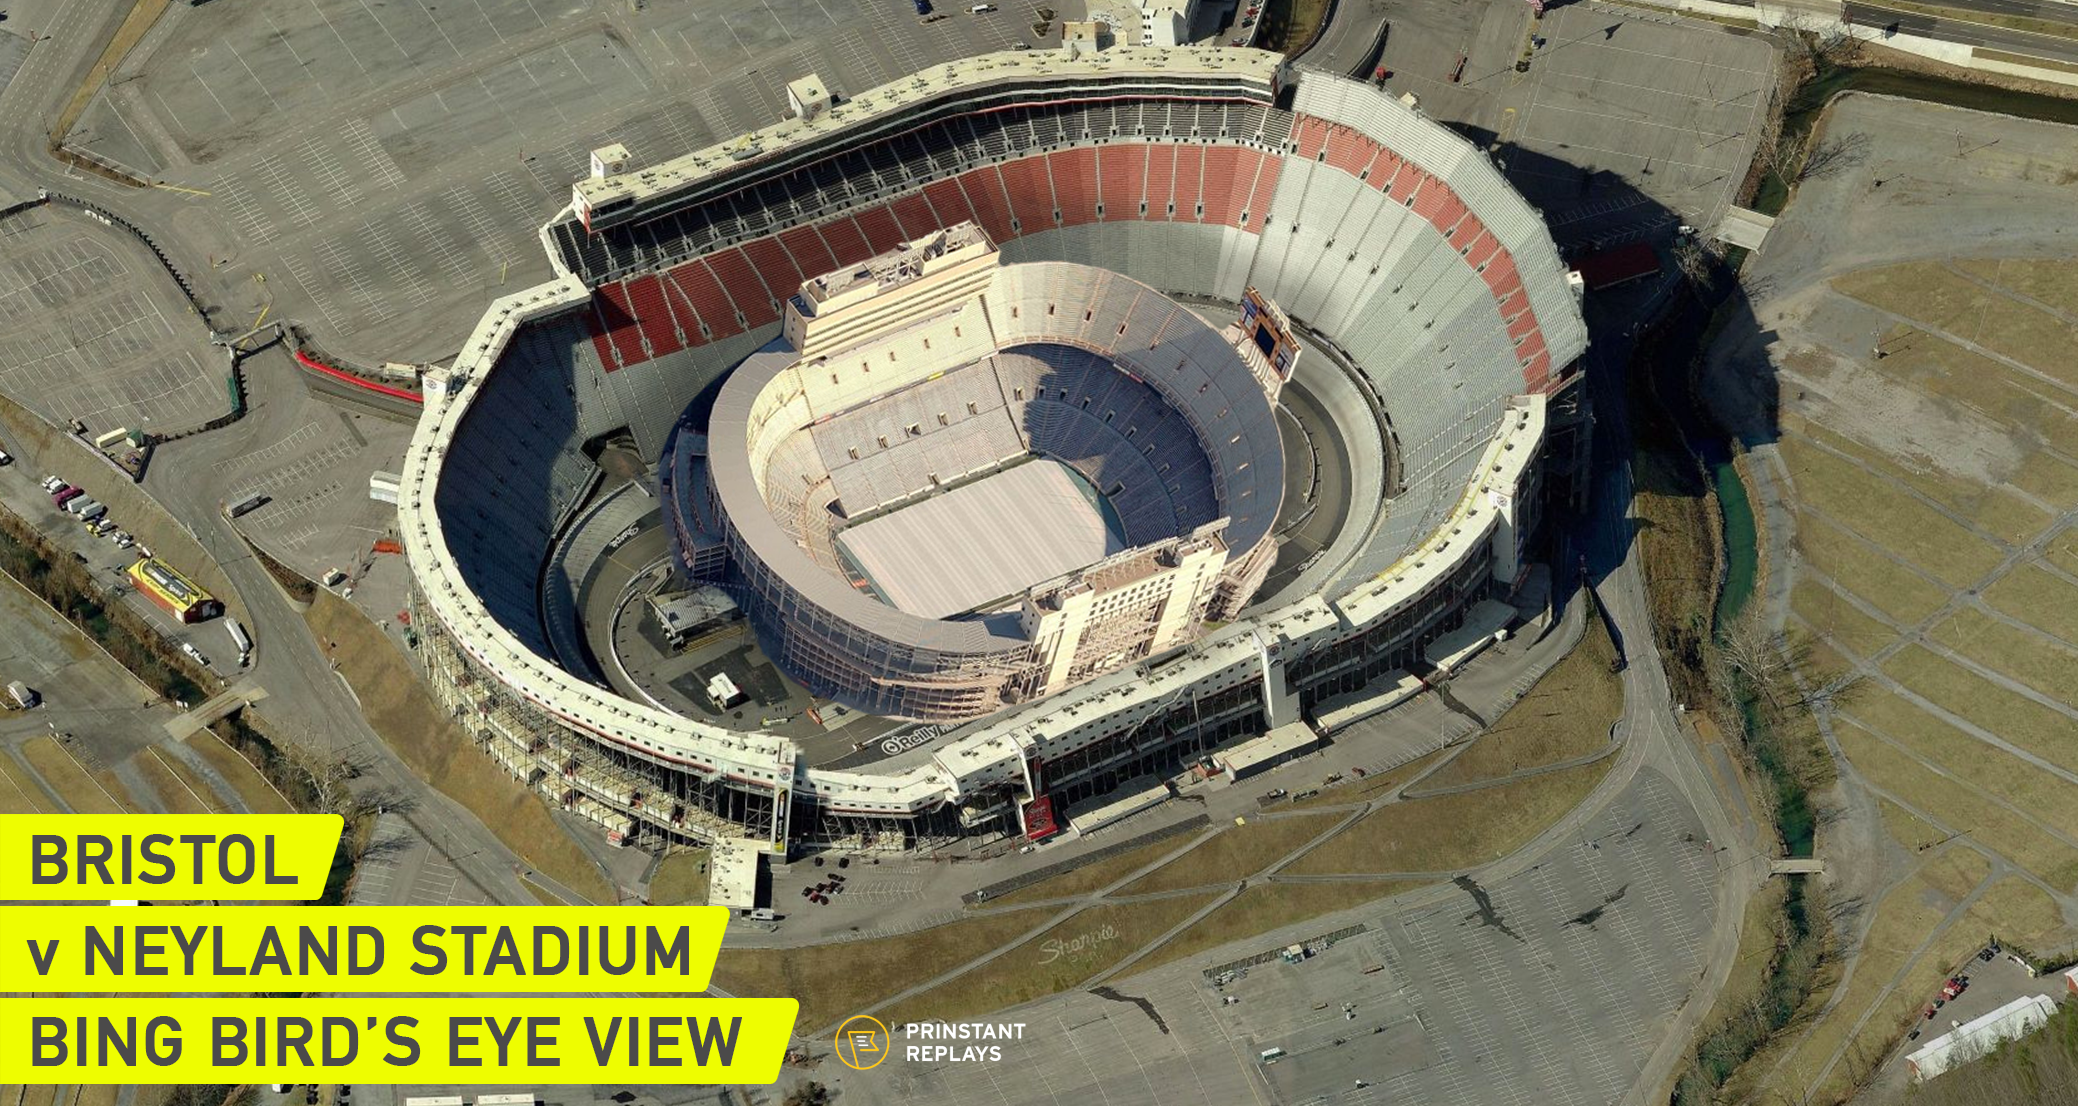 Neyland inside Bristol Bird's Eye View by Prinstant Replays